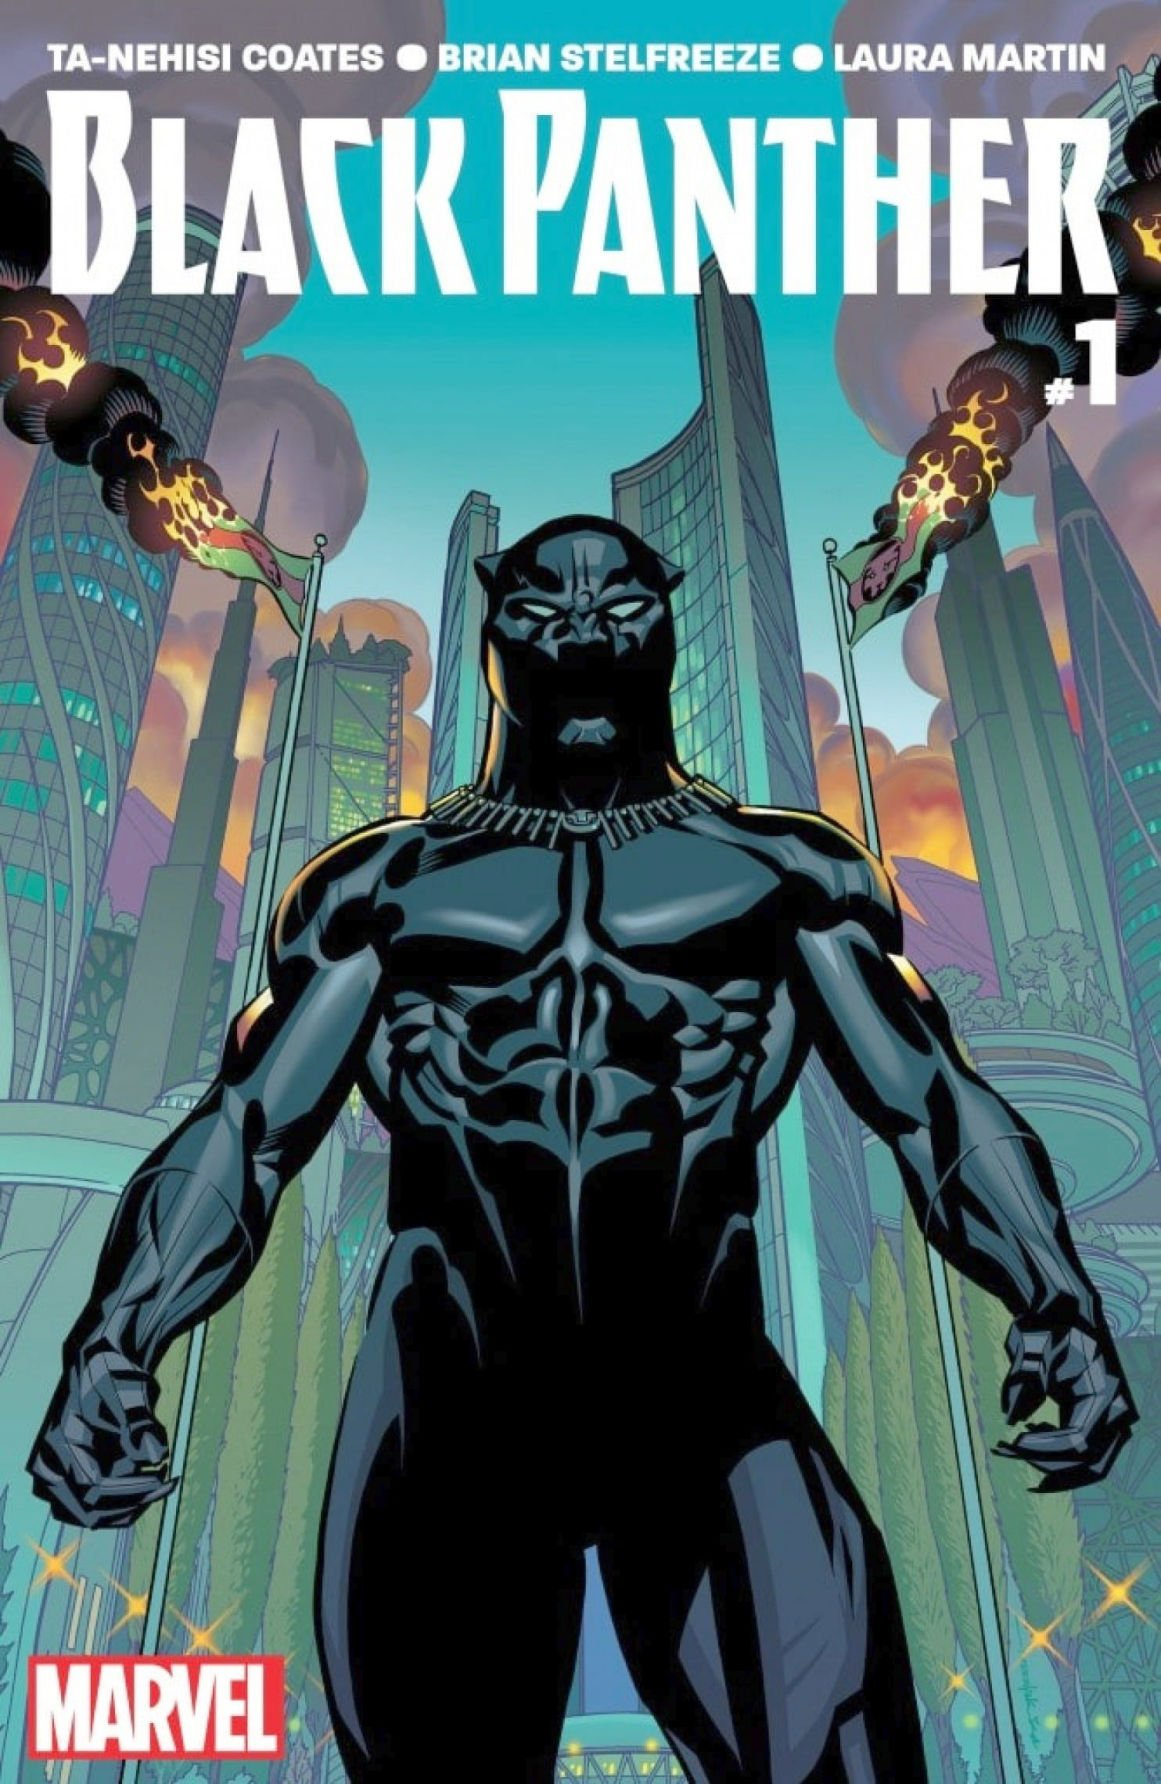 'Black Panther' is a superhero - not a sidekick - worth holding out for